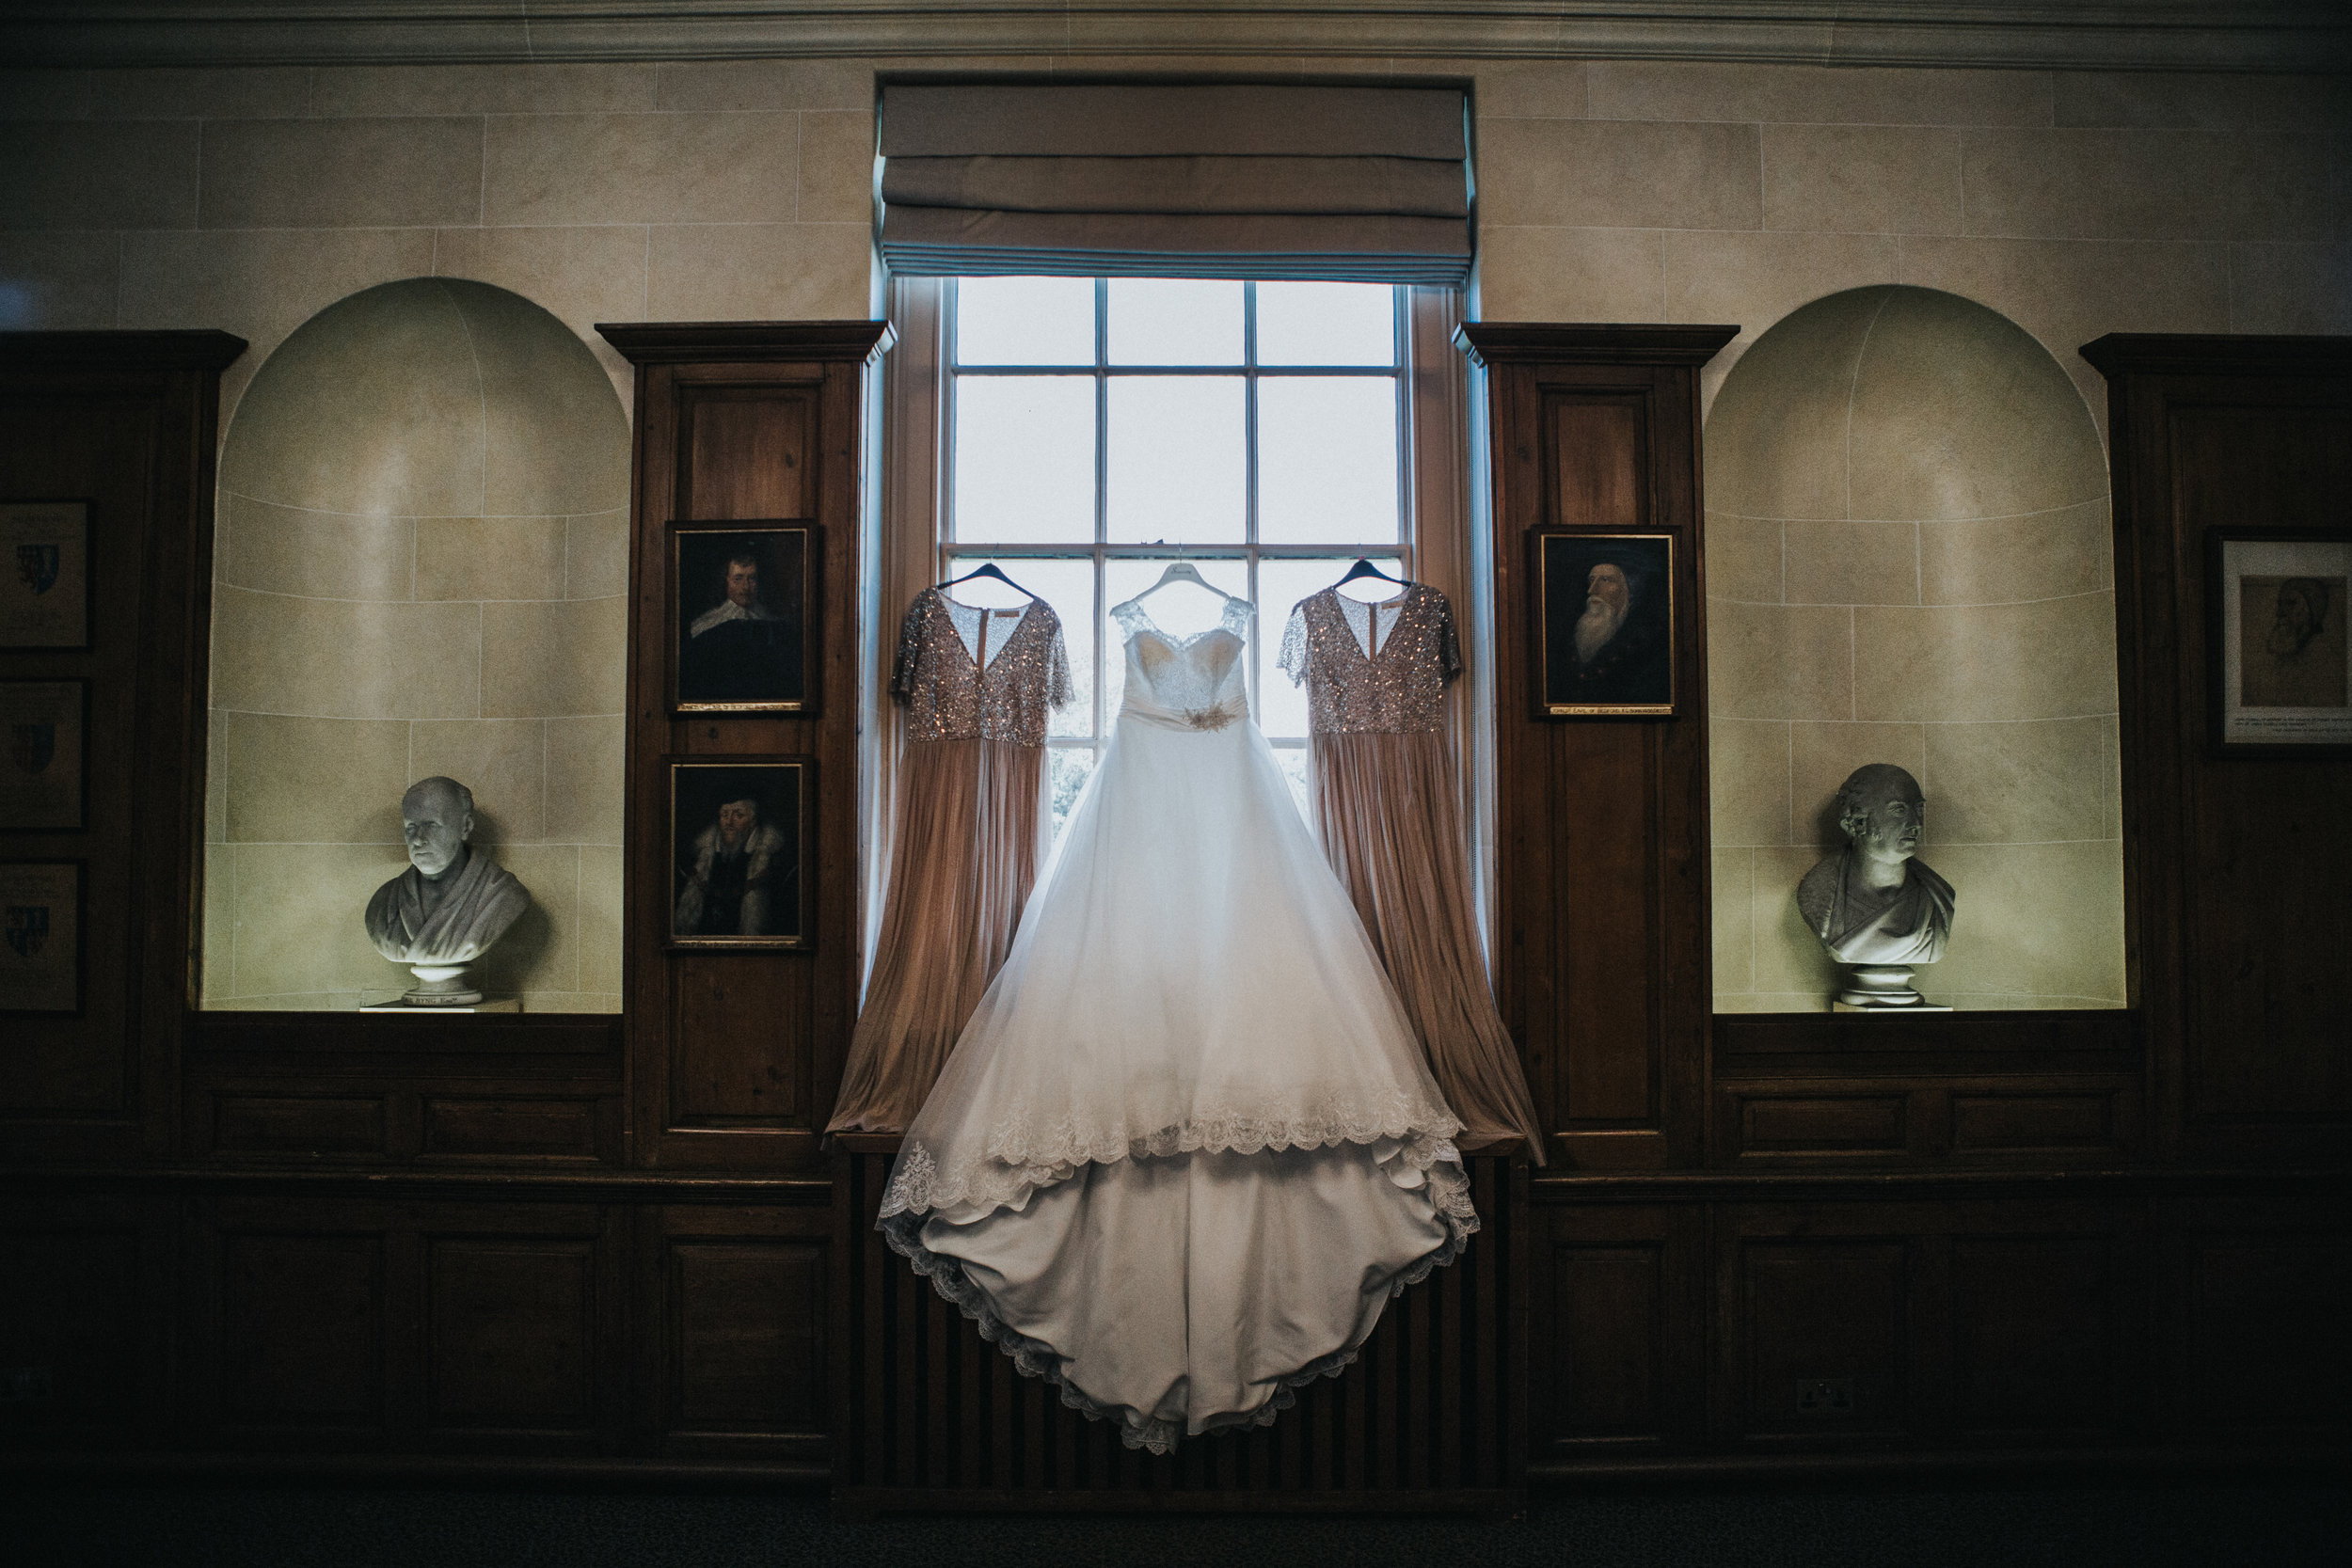 london-bedfordshire-uk-wedding-photography-woburn-scultpture-gallery-bridal-prep-10